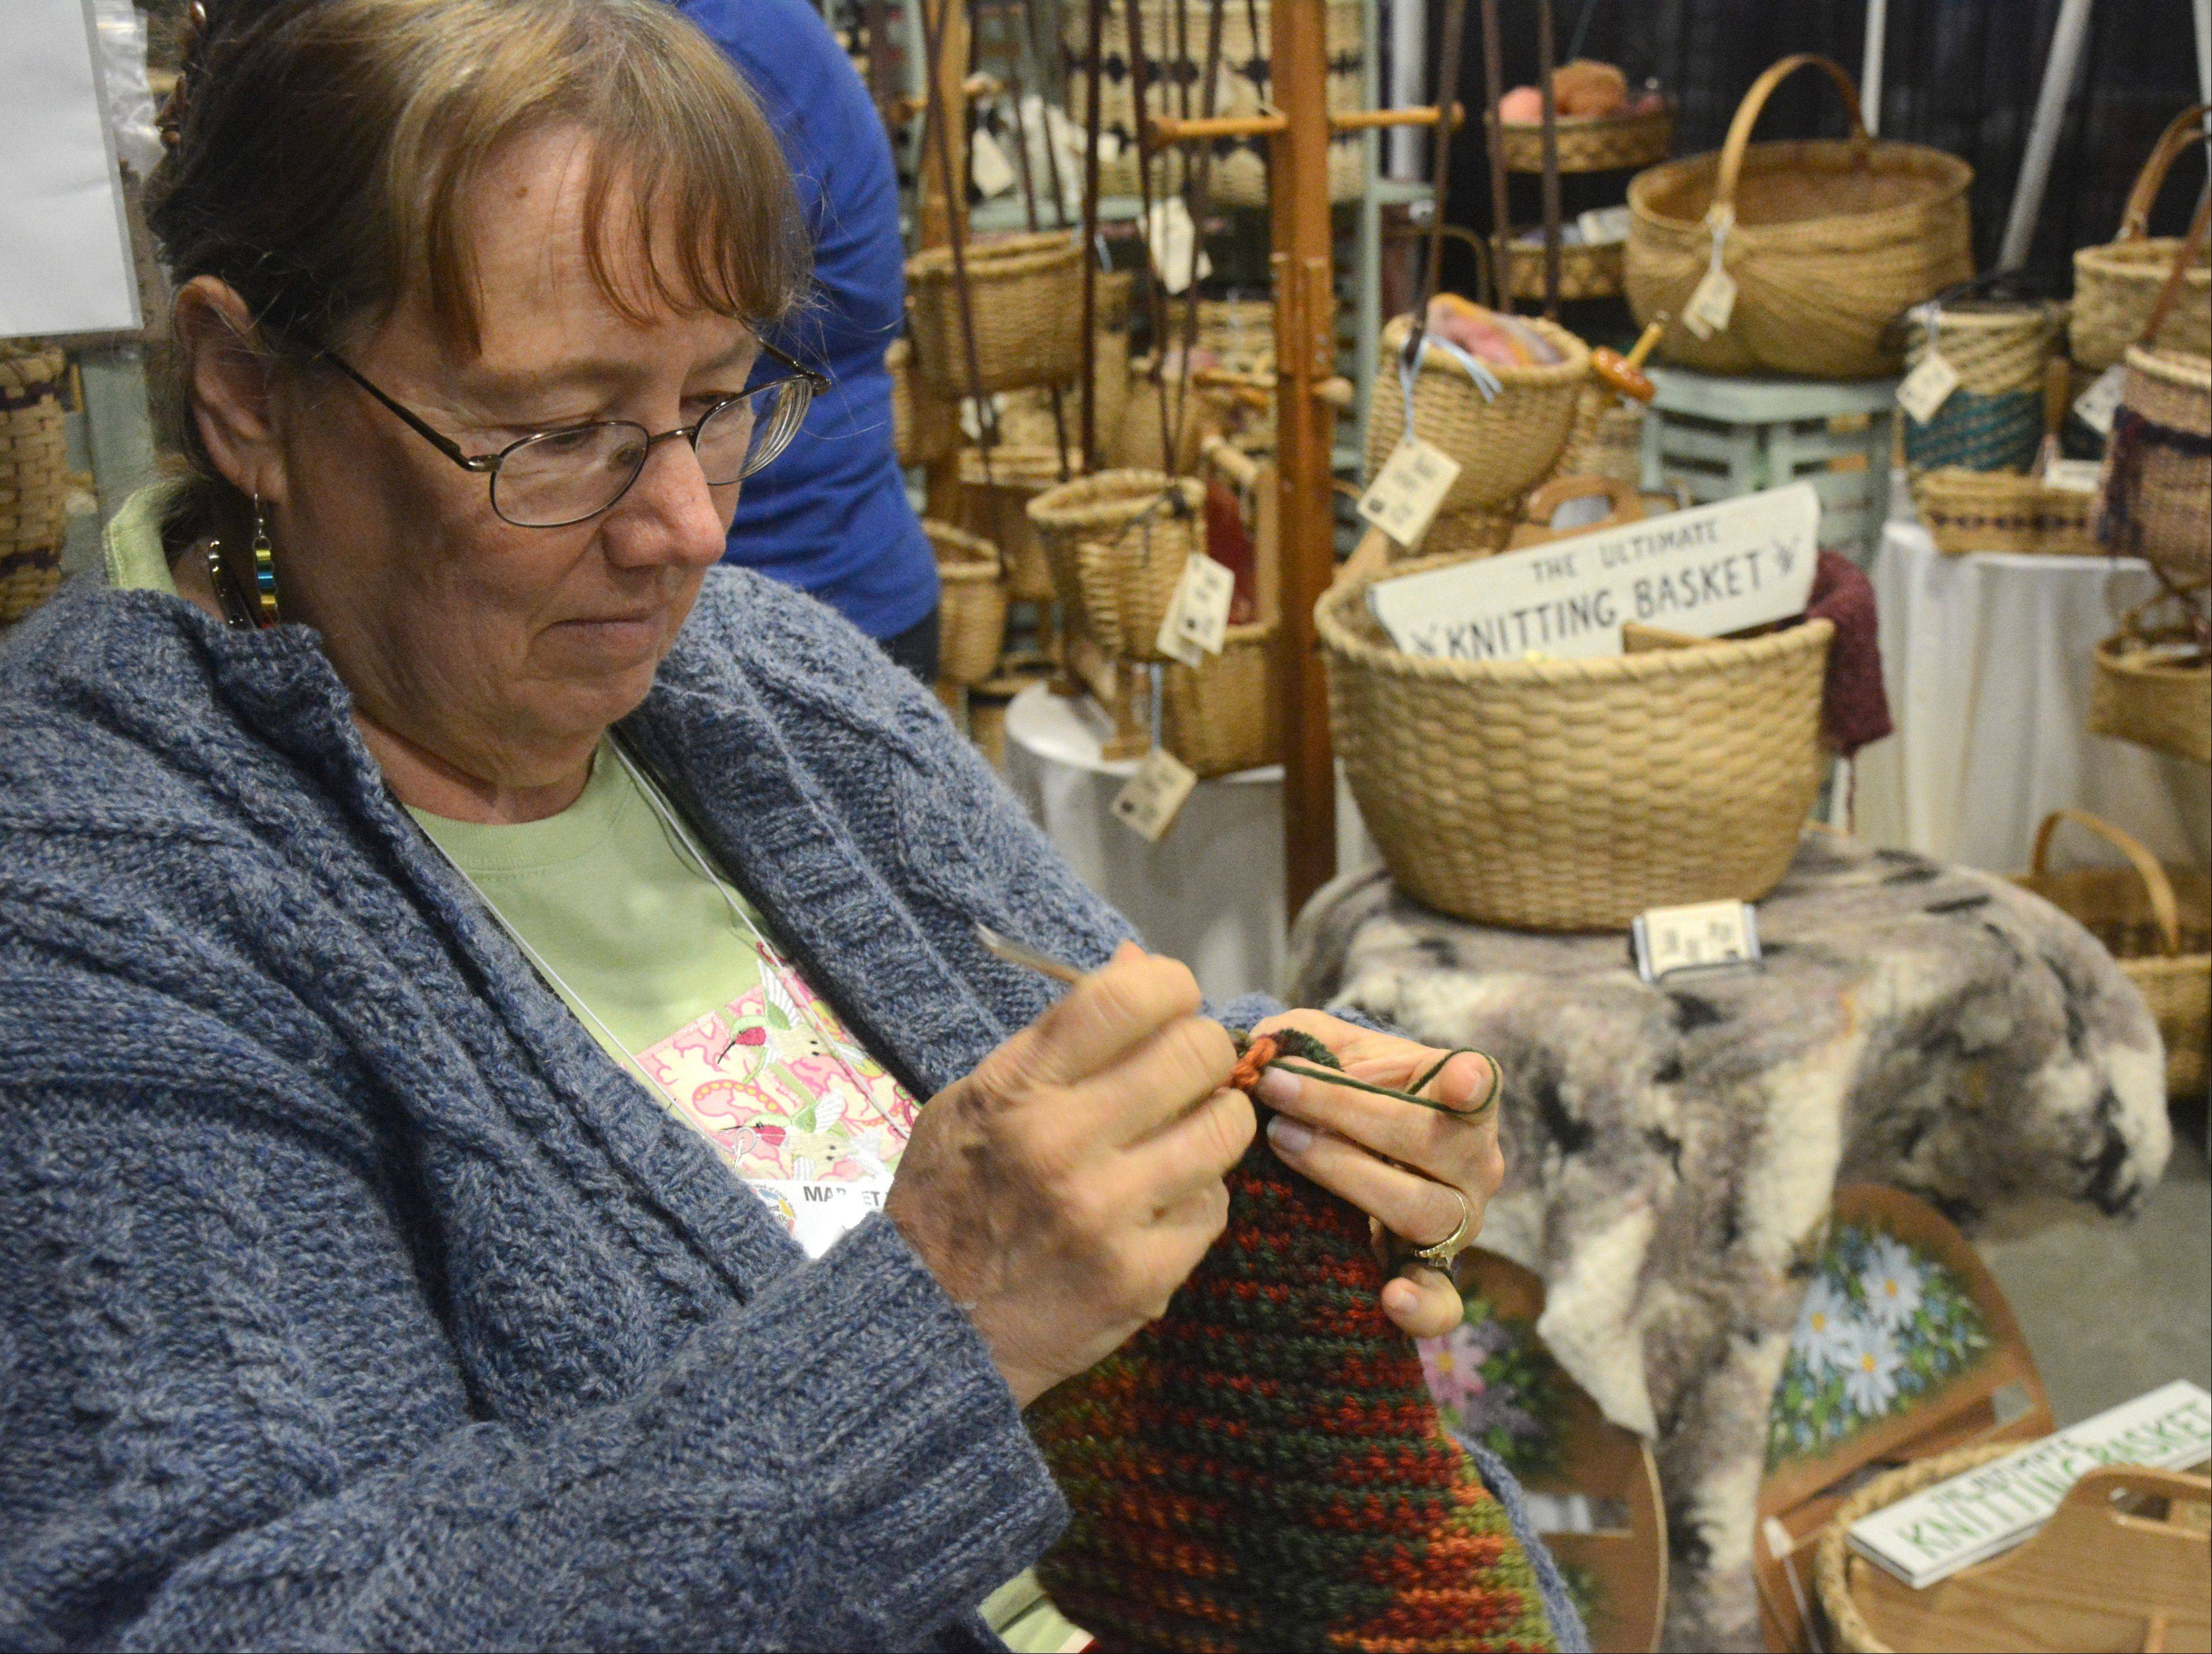 Susan Preuss of Waukesha, Wis., knits at her booth. She is a basket weaver by trade and was knitting an item to help display the knitting baskets she makes.